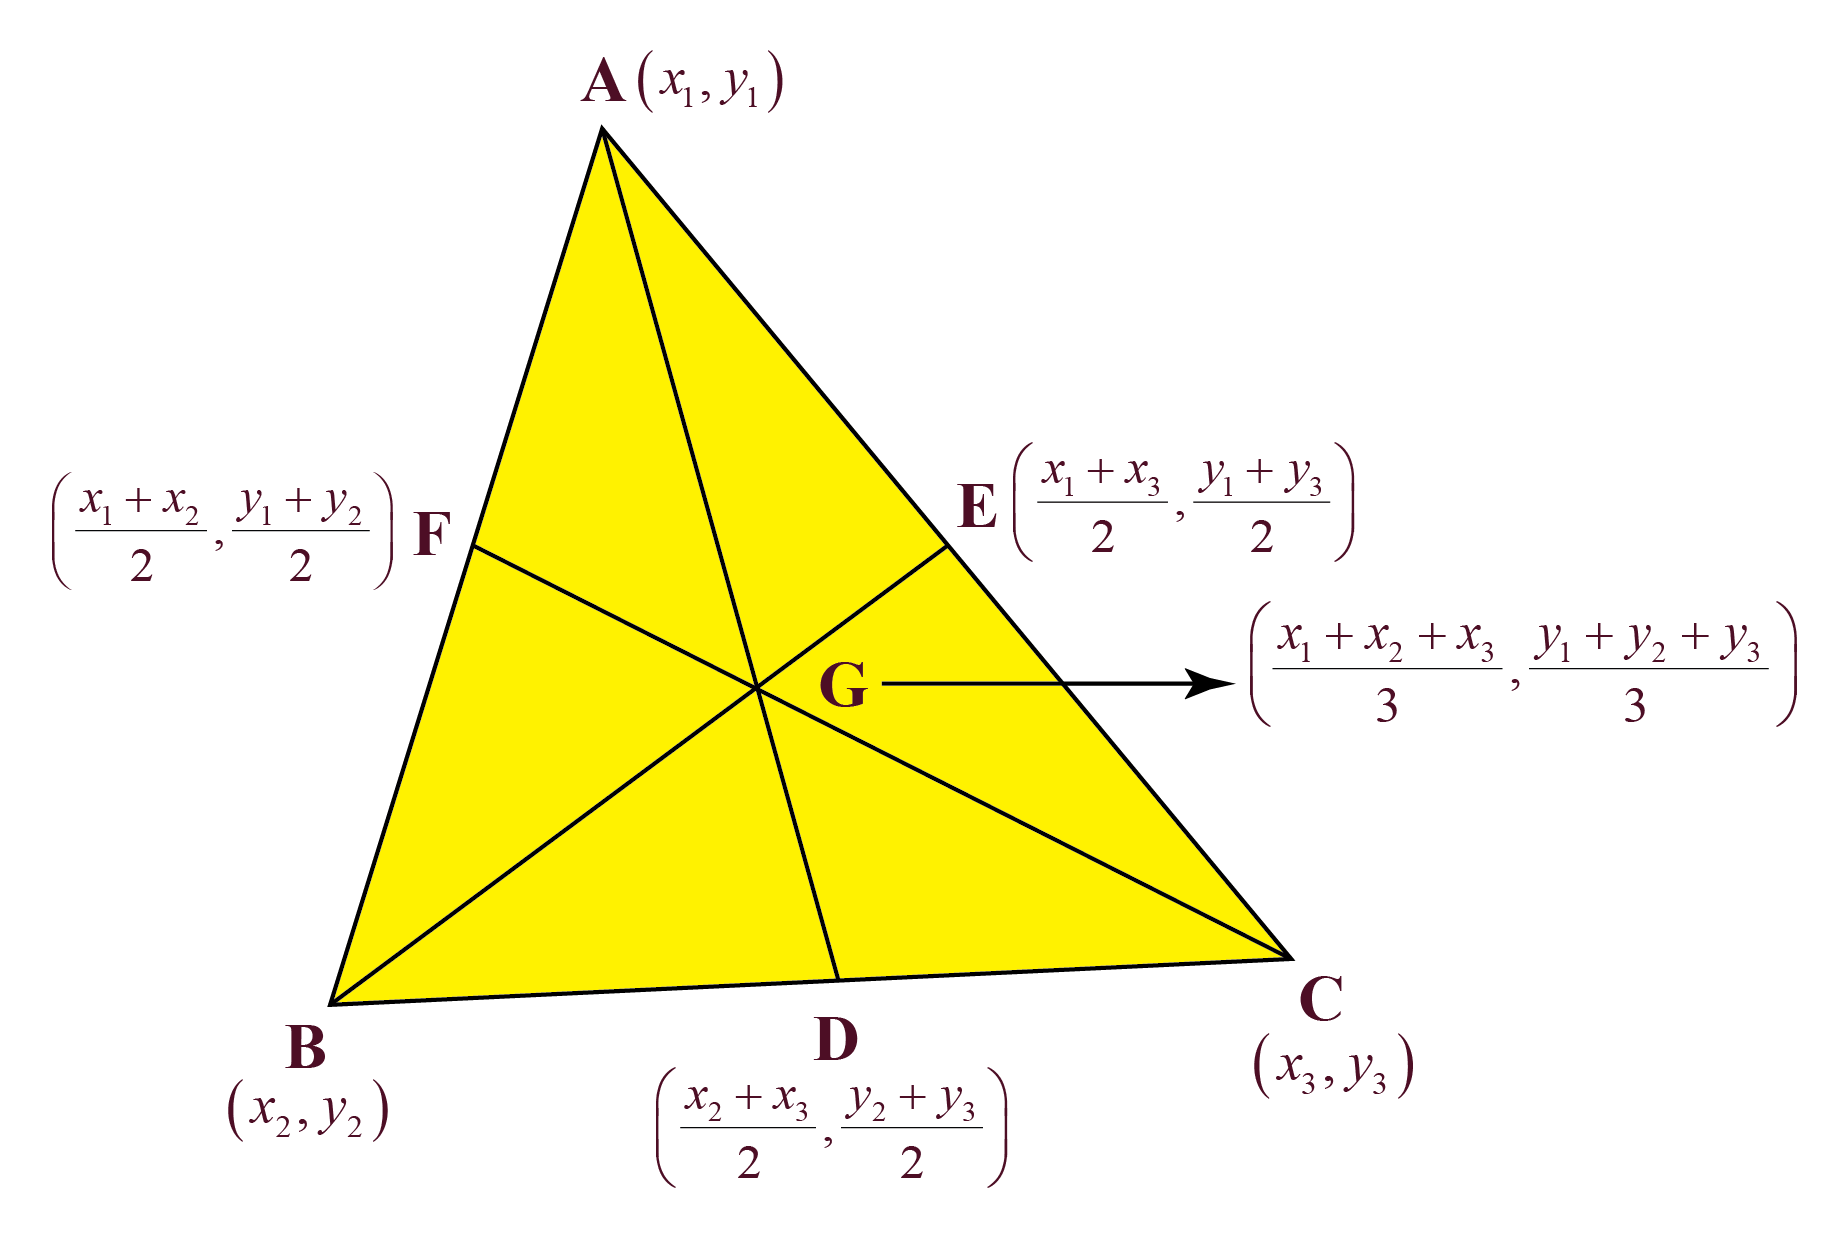 The coordinates of the centroid of a triangle (or any other figure bounded by line segments) are the arithmetic mean of the coordinates of the vertices.